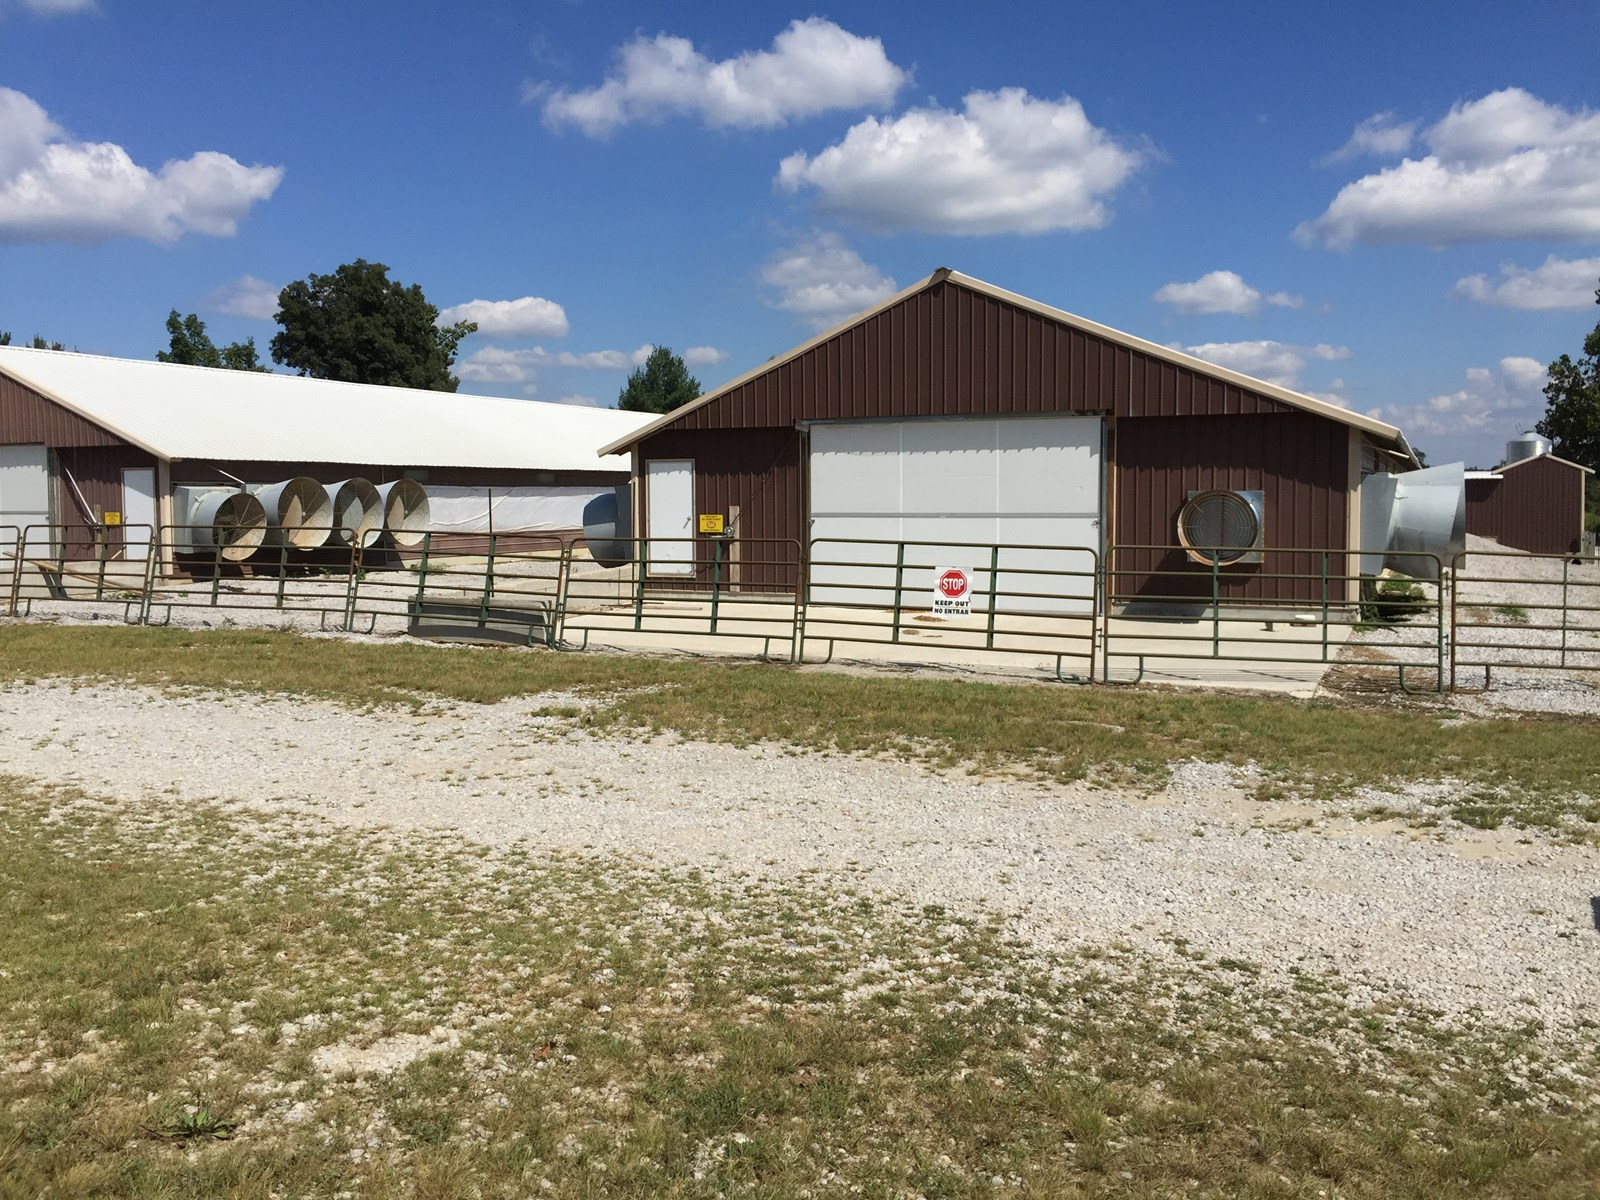 PENDING Poultry Houses on 156 Acres m/l in Kentucky